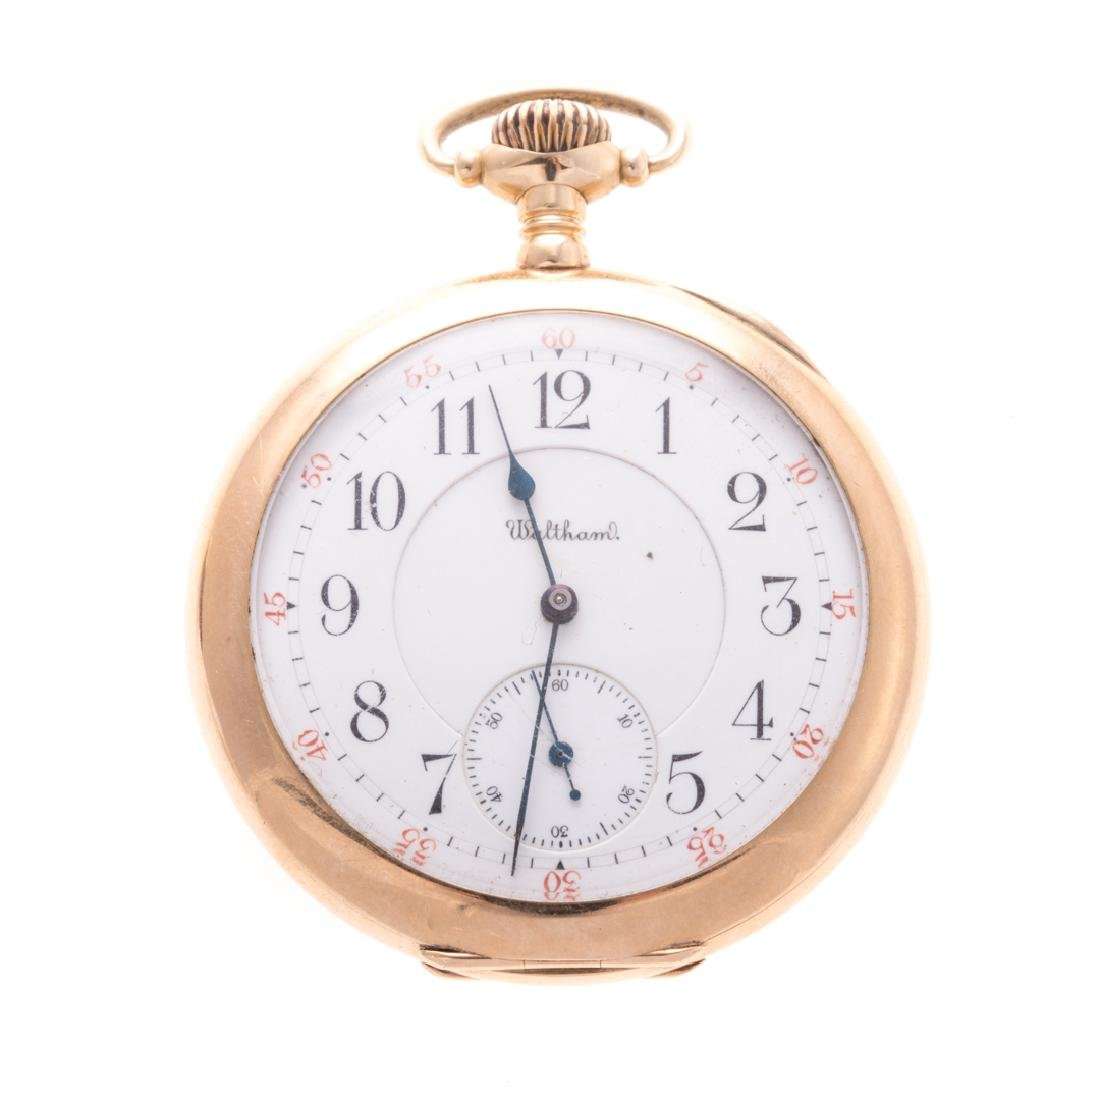 A Gentlemen's Waltham Pocket Watch in 14K